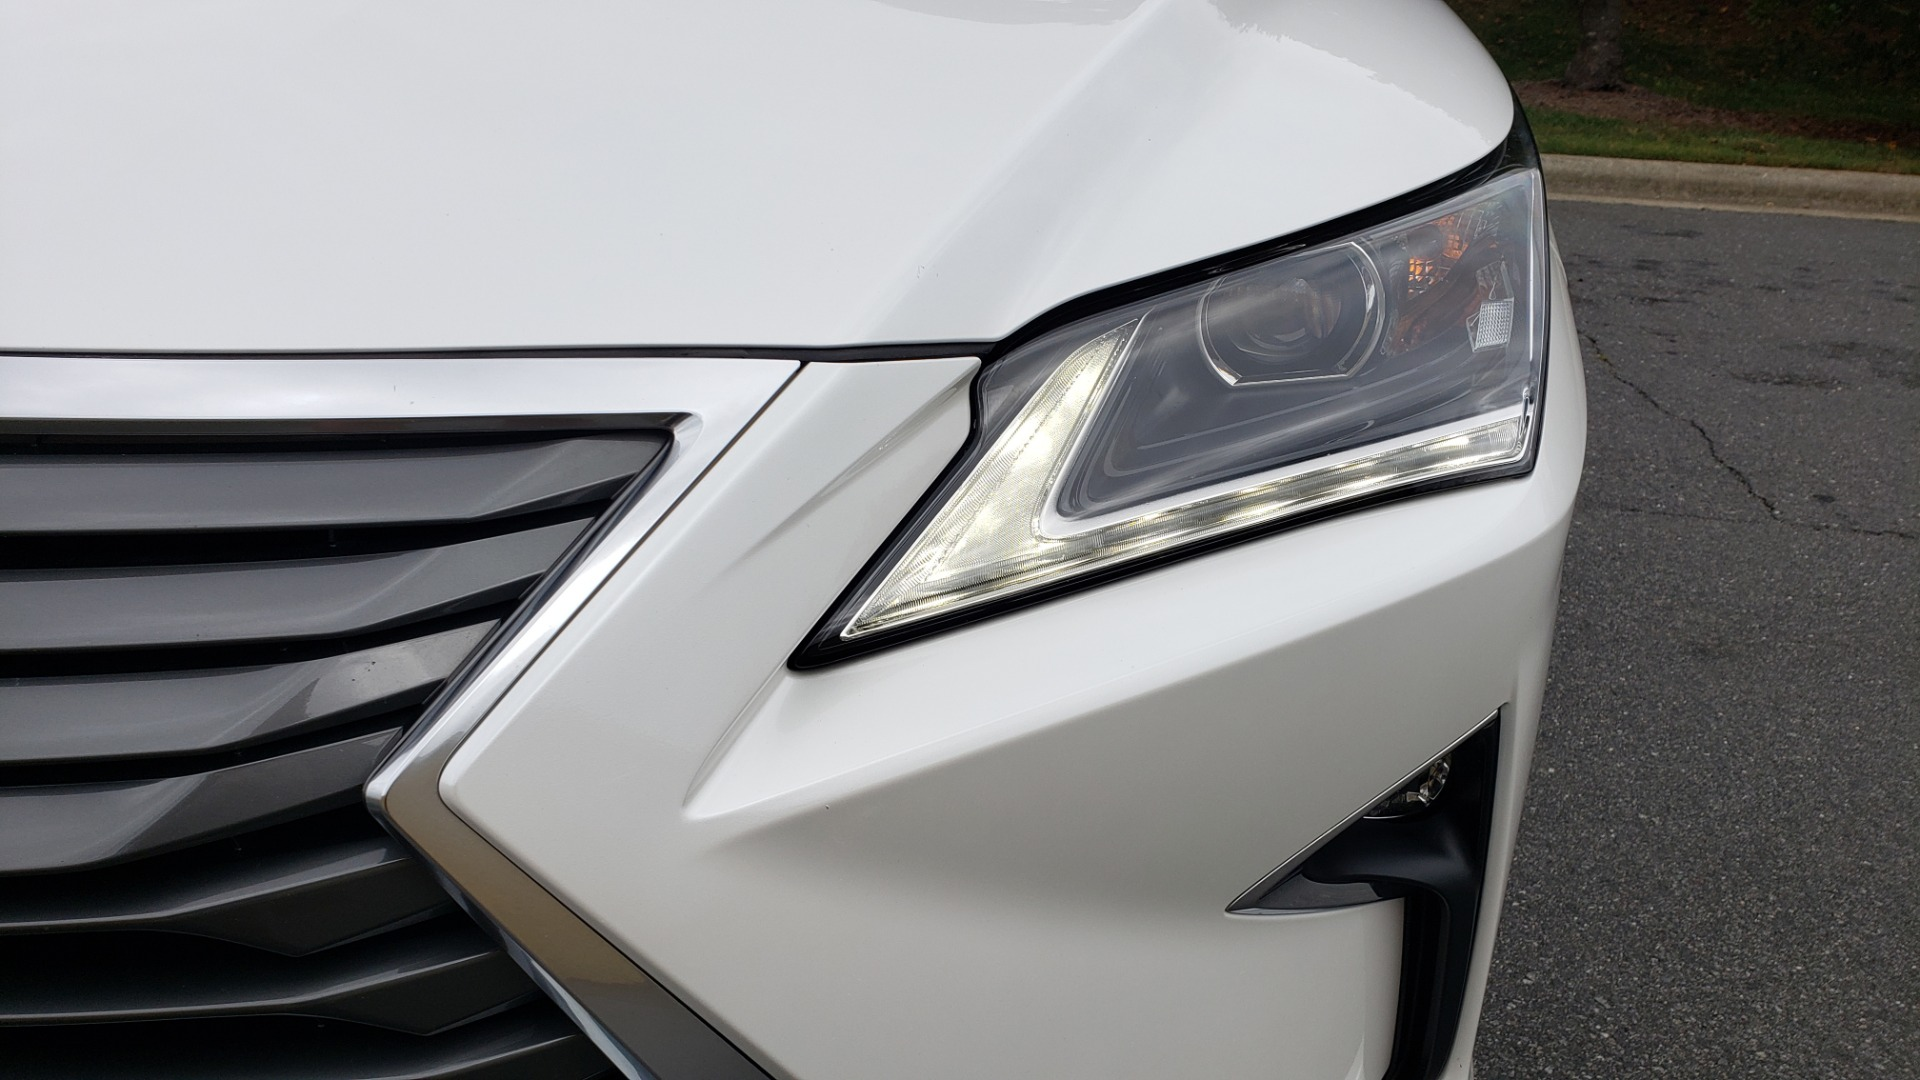 Used 2016 Lexus RX 350 FWD / 4-DR / 3.5L V6 / 8-SPD AUTO / LEATHER / REARVIEW for sale $29,795 at Formula Imports in Charlotte NC 28227 25